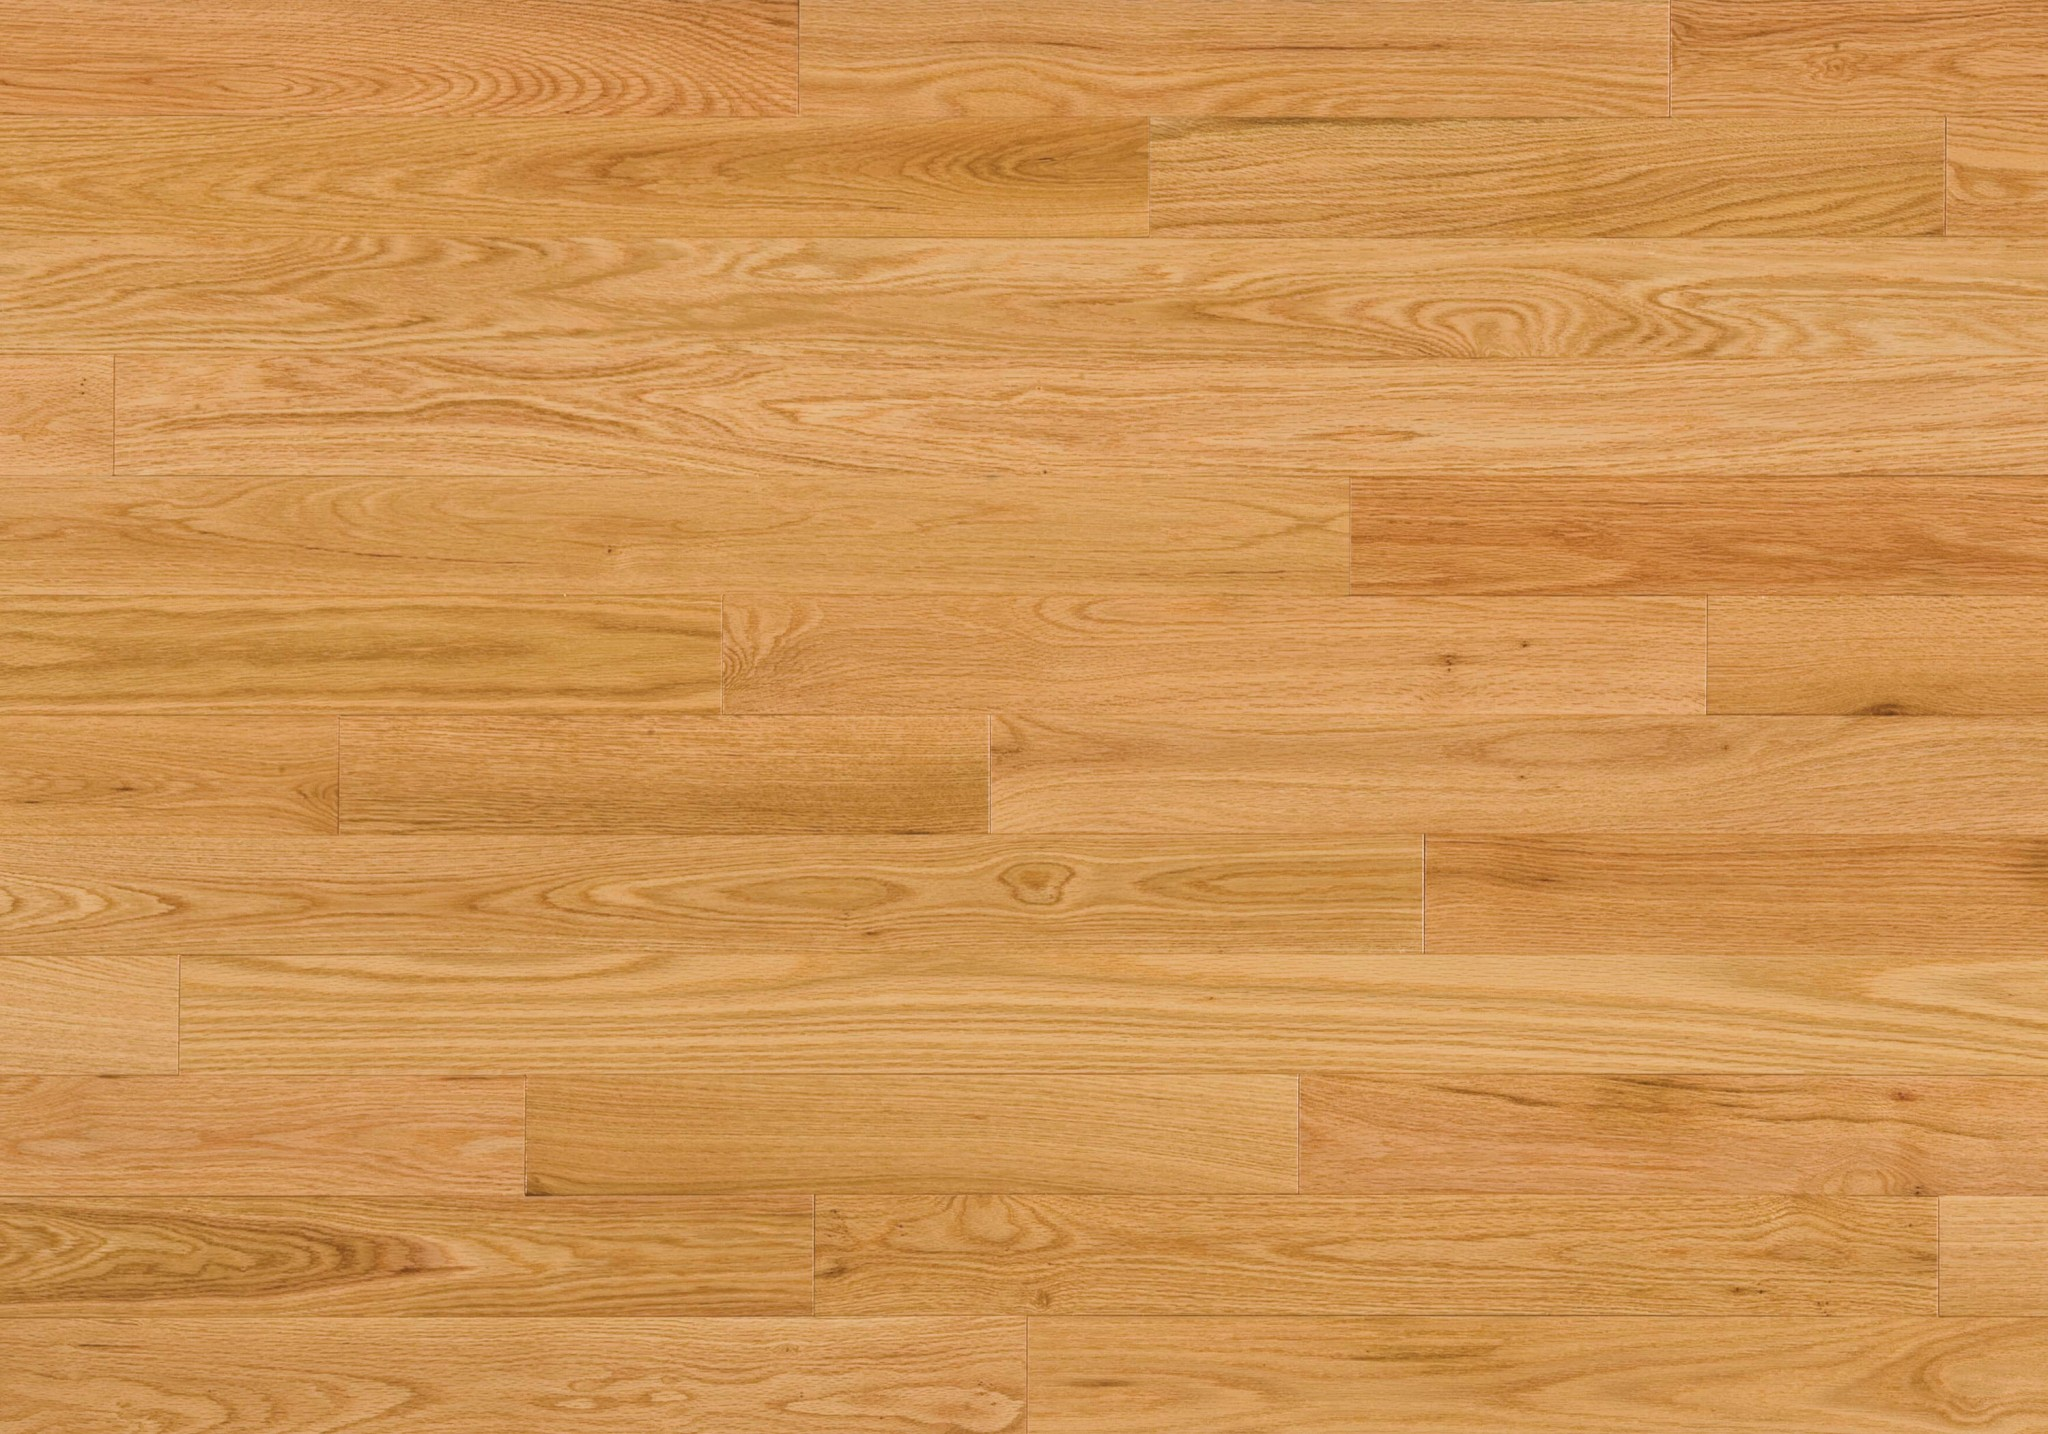 Natural white oak hardwood flooring wood floors for Oak wood flooring